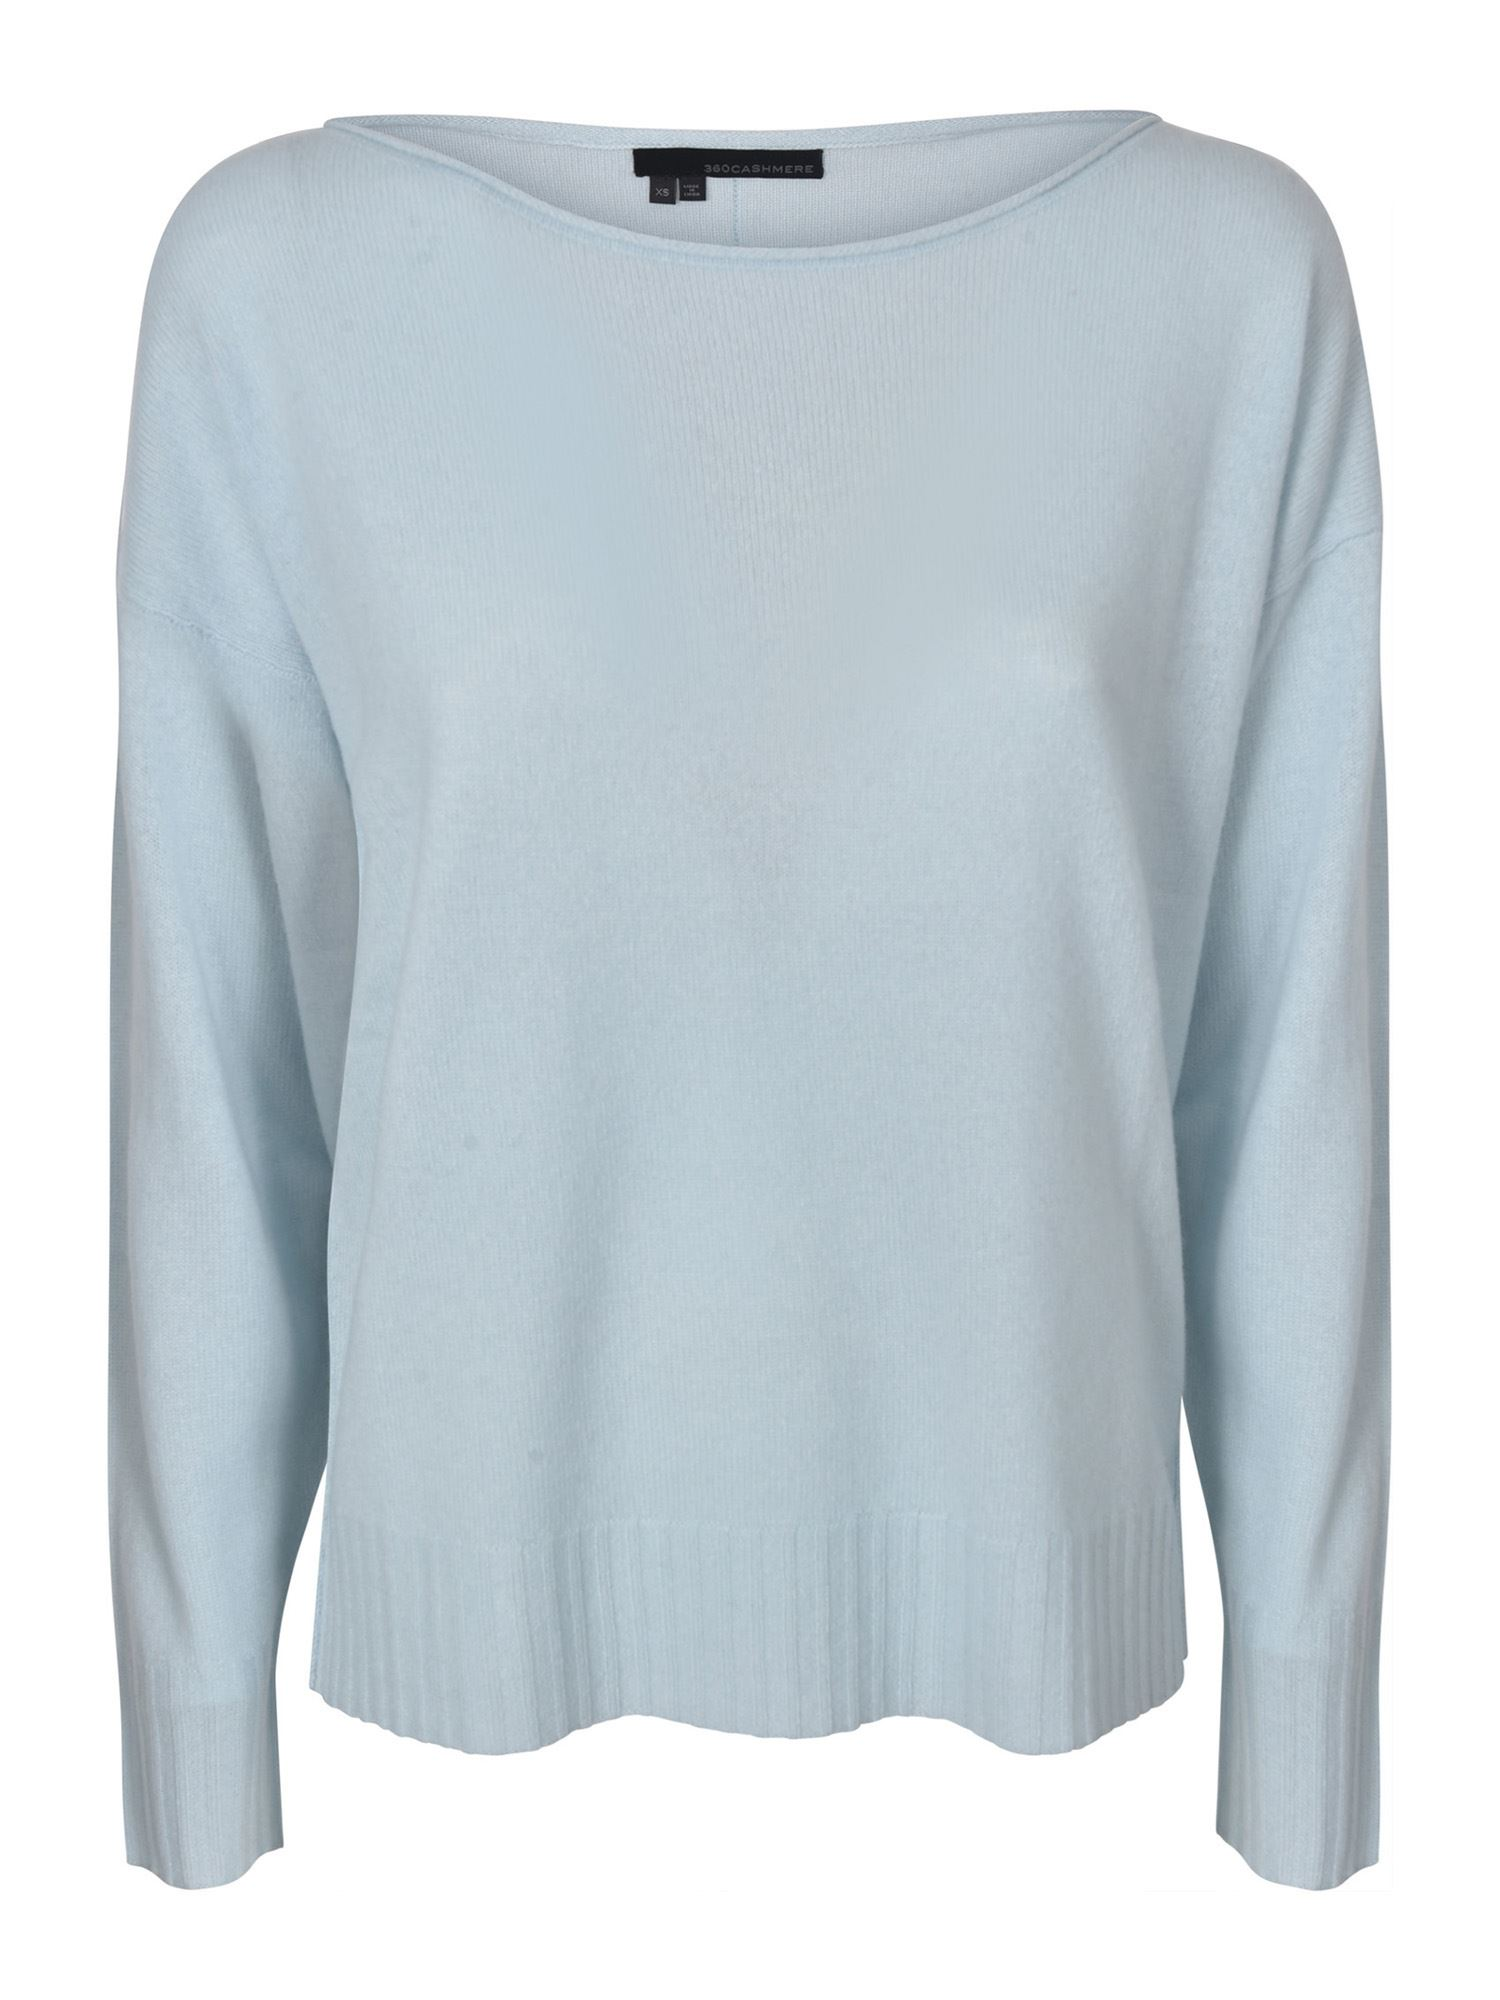 360cashmere SADIE SWEATER IN MINT COLOR